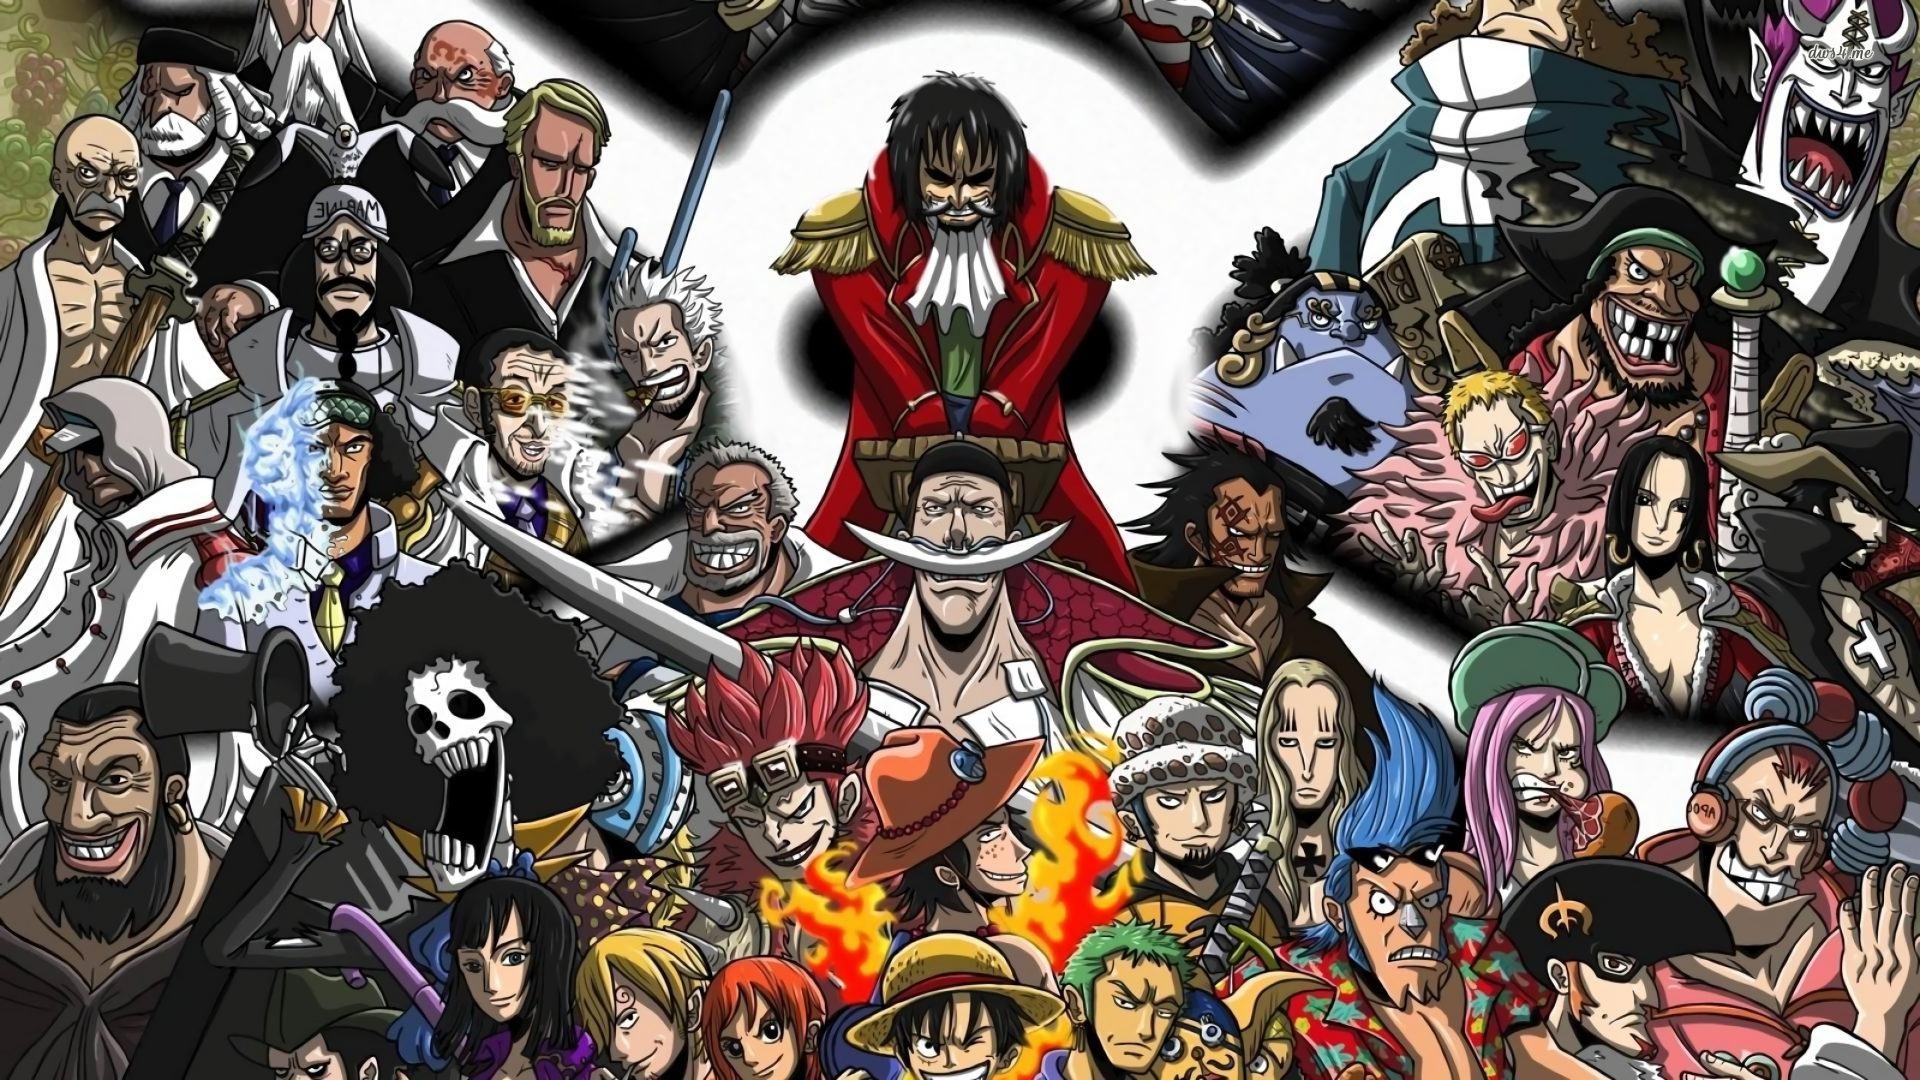 One piece hd wallpaper background image 1920x1080 id - One piece wallpaper ...